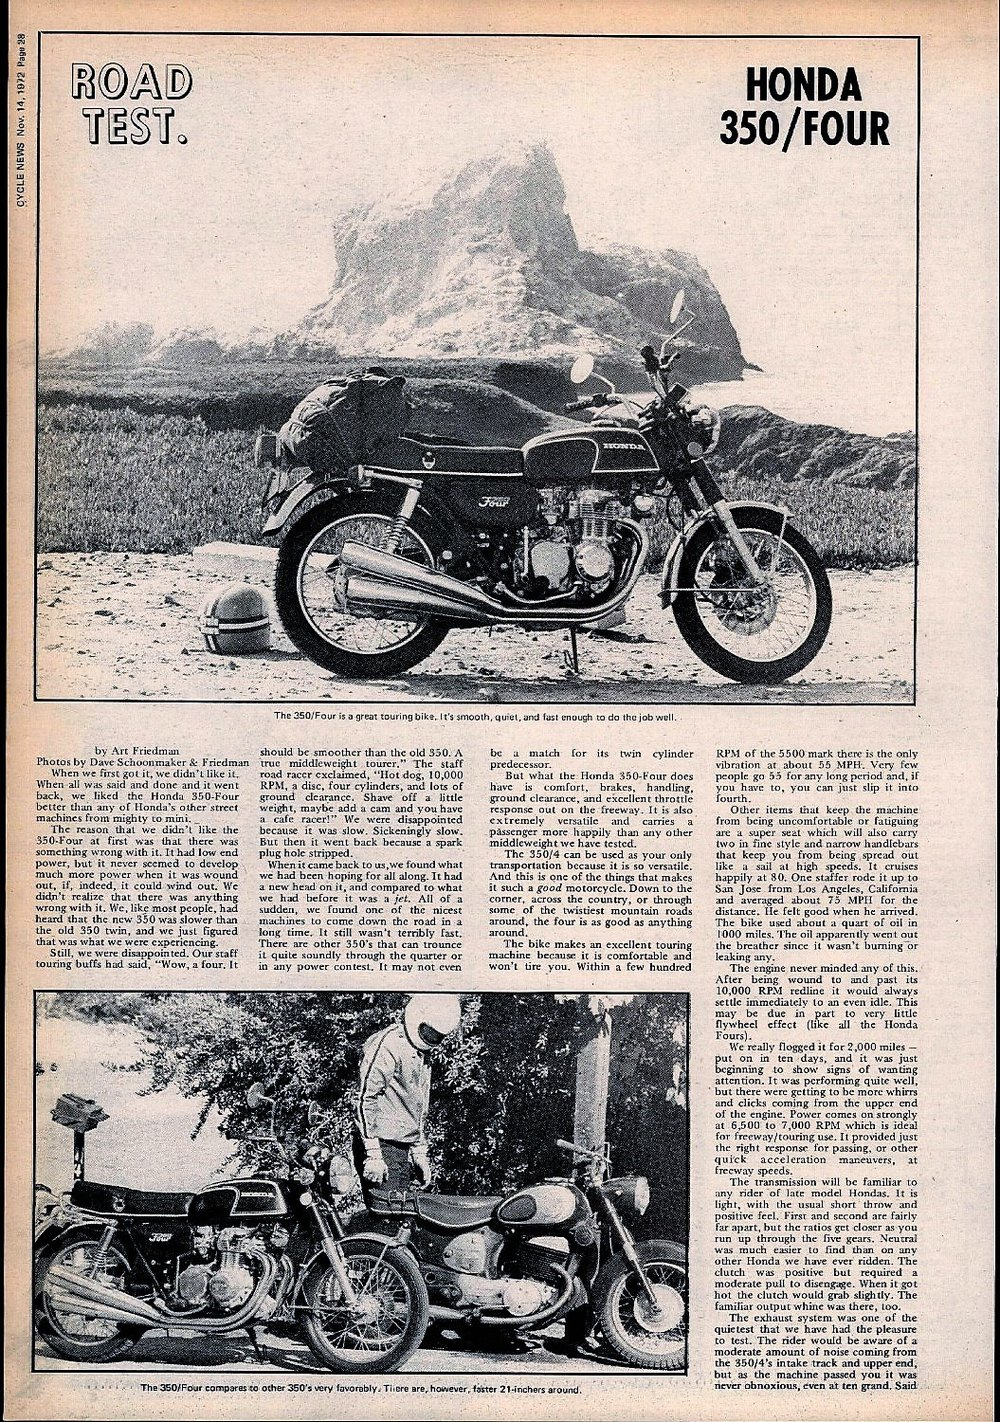 Honda 350 1972 road test 1.jpg